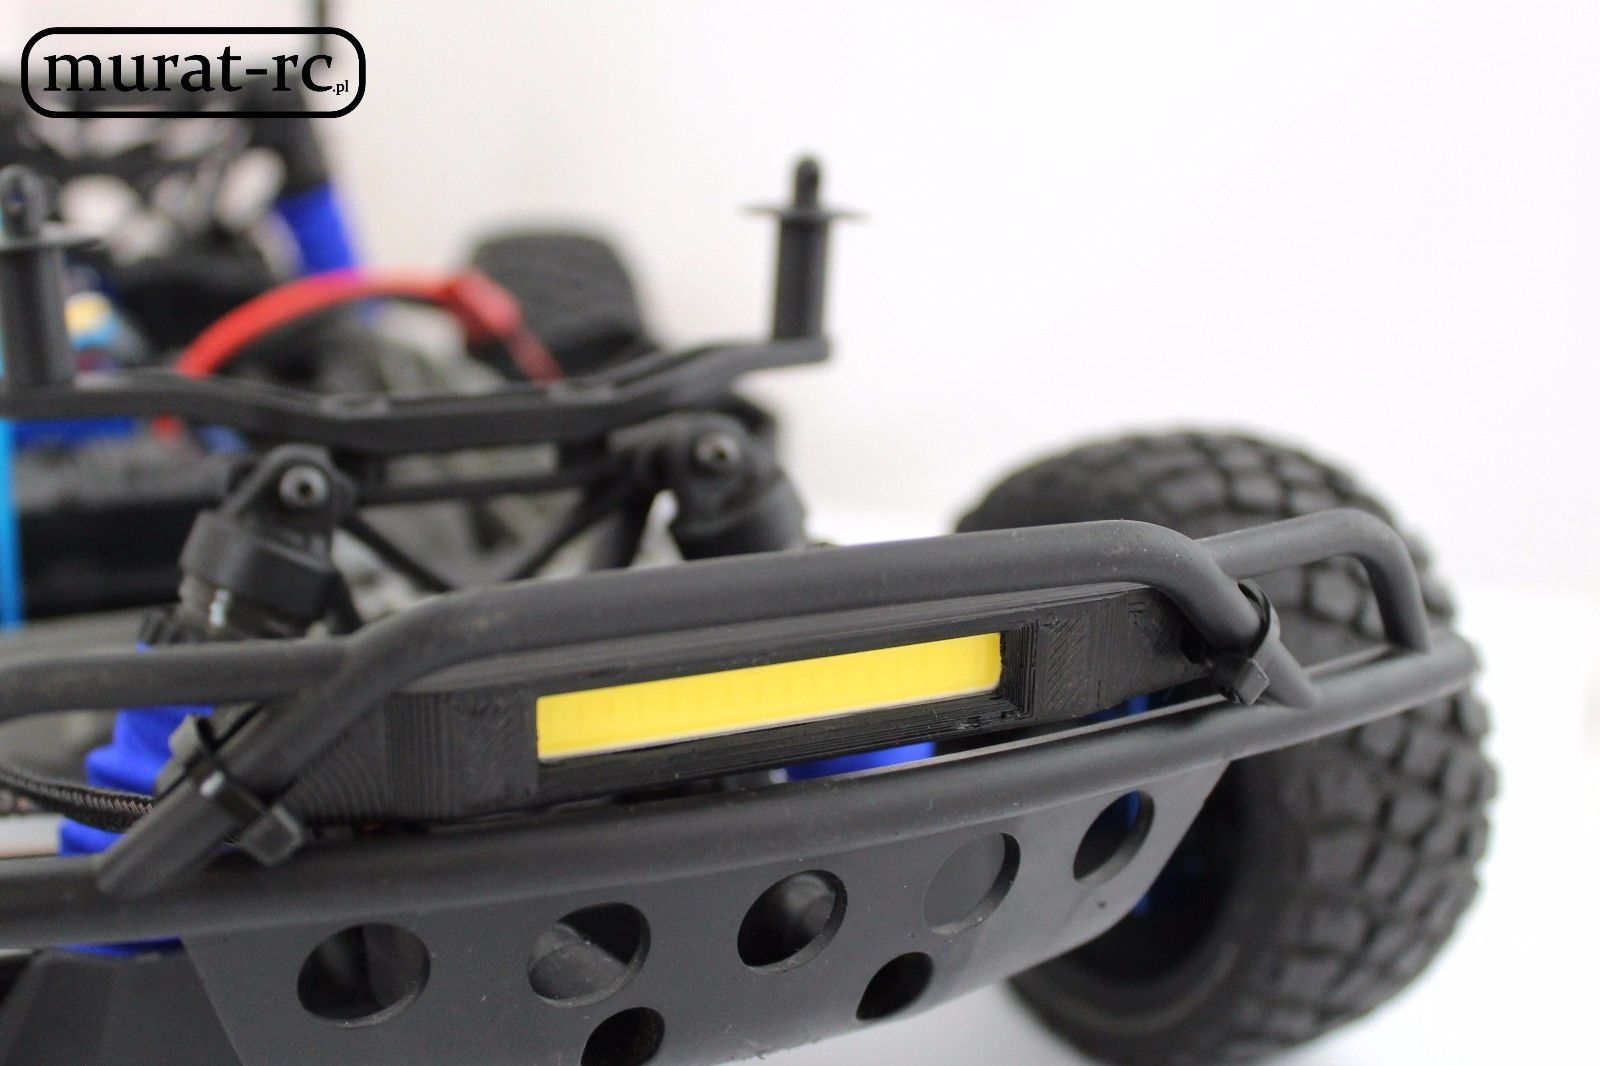 Led Light Bar Front For Traxxas Slash 4x4 2wd Waterproof By Murat Rc Traxxas Slash 4x4 Traxxas Slash Slash 4x4